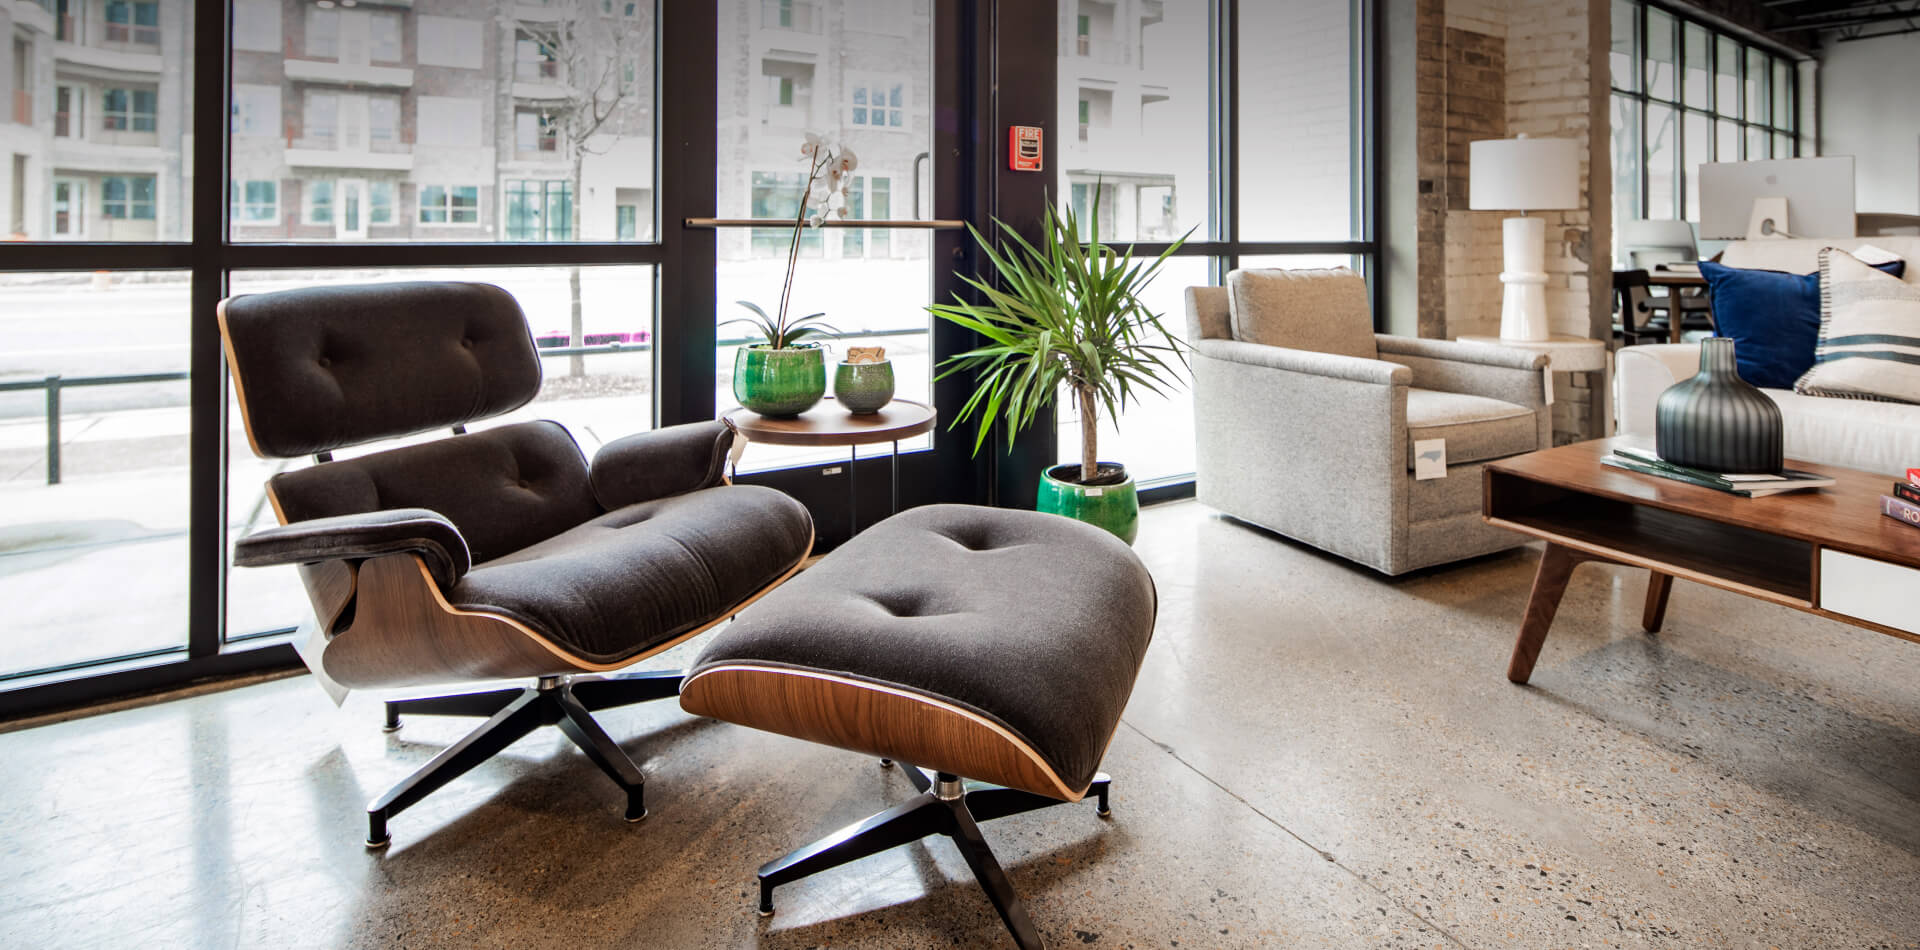 A lounge chair and ottoman